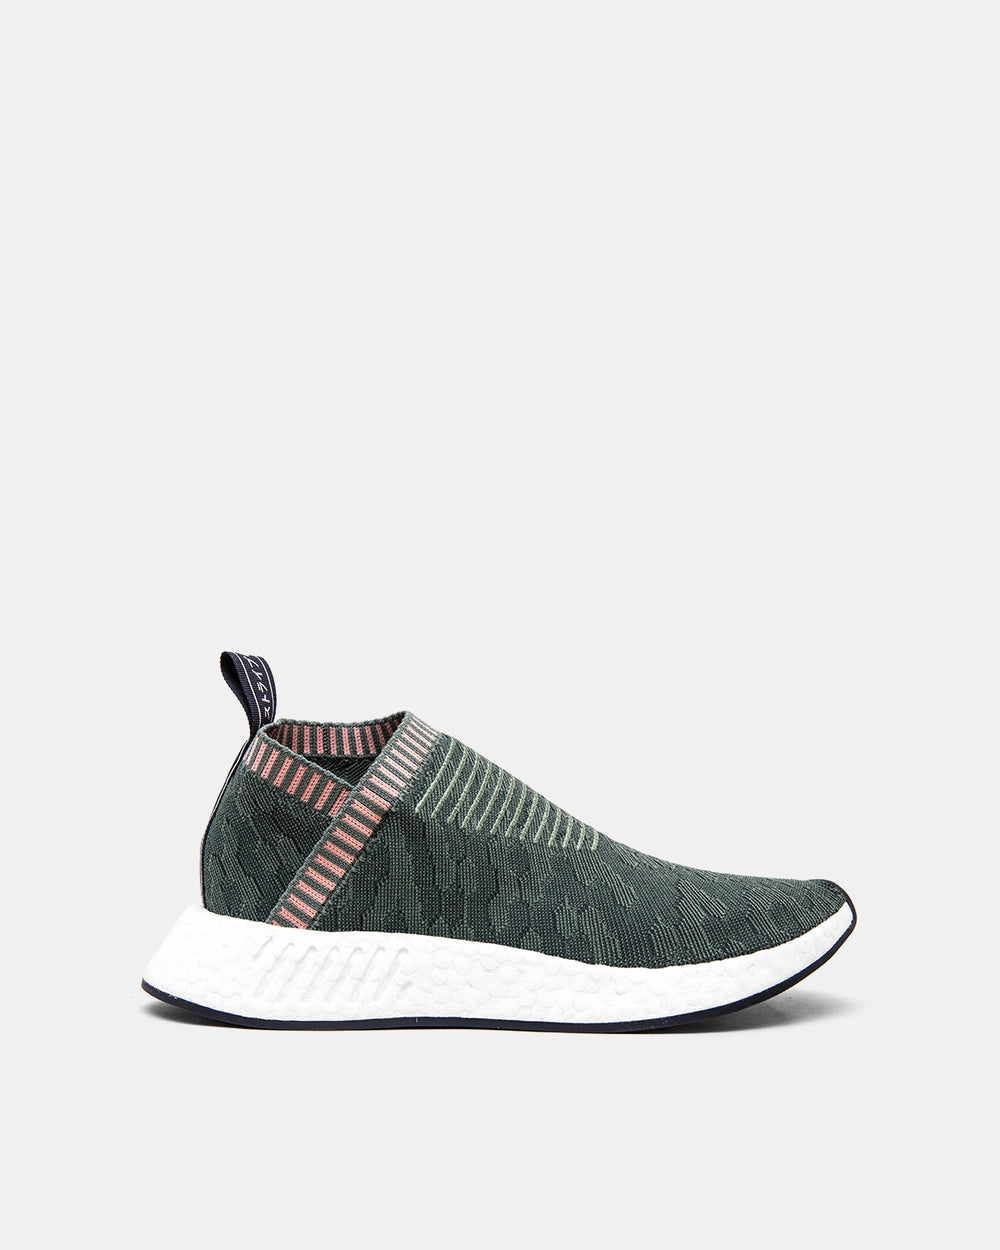 adidas - Women's NMD CS2 Primeknit (Trace Green | Trace Pink)